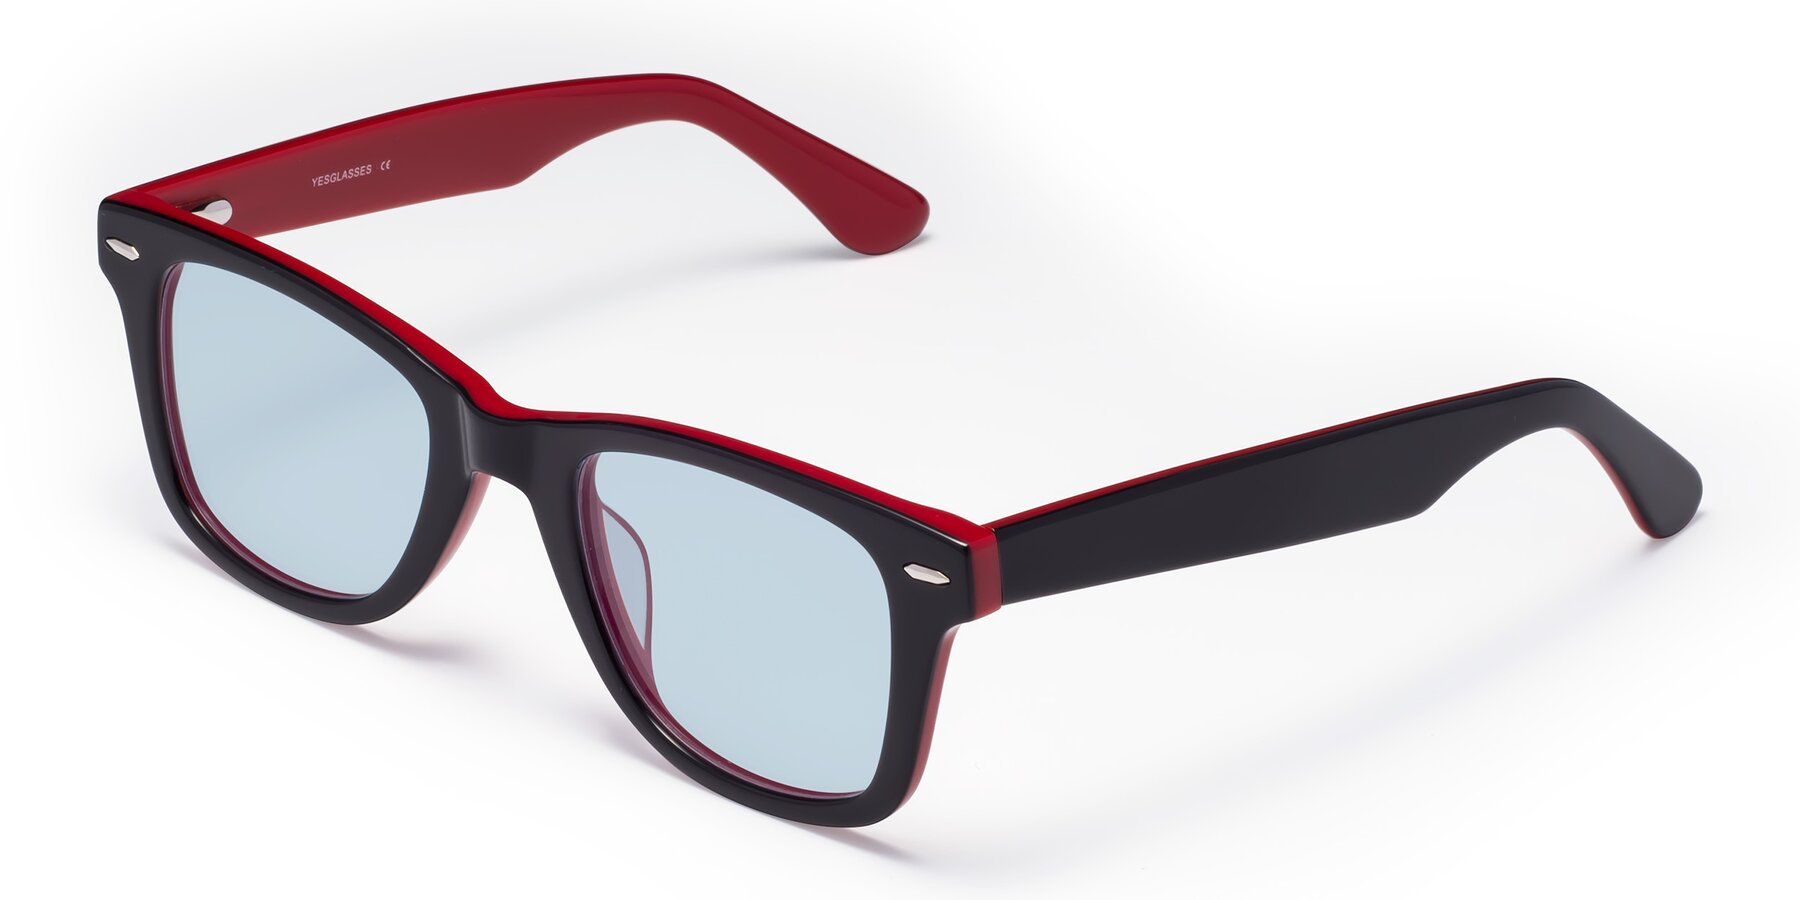 Angle of Rocky in Black-Wine with Light Blue Tinted Lenses